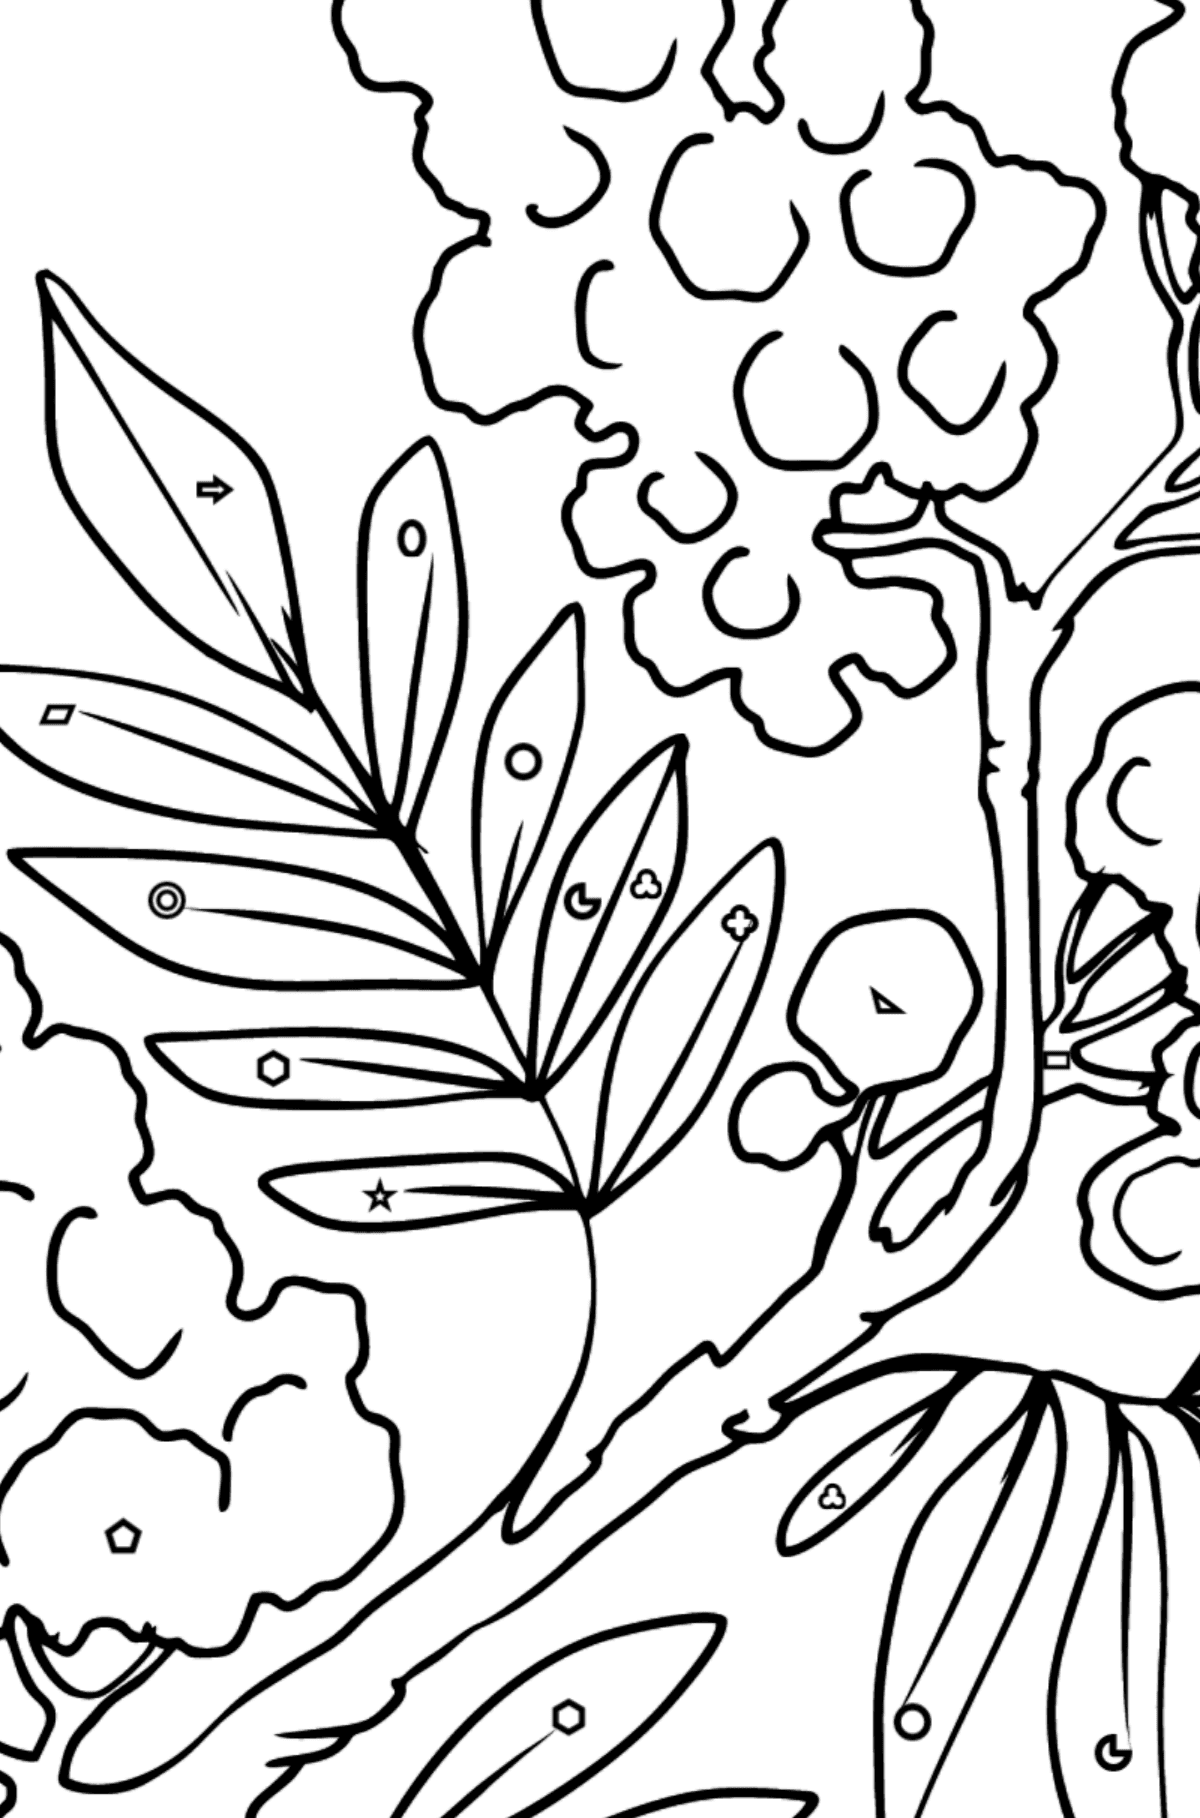 Flower Coloring Page - Mimosa - Coloring by Geometric Shapes for Kids